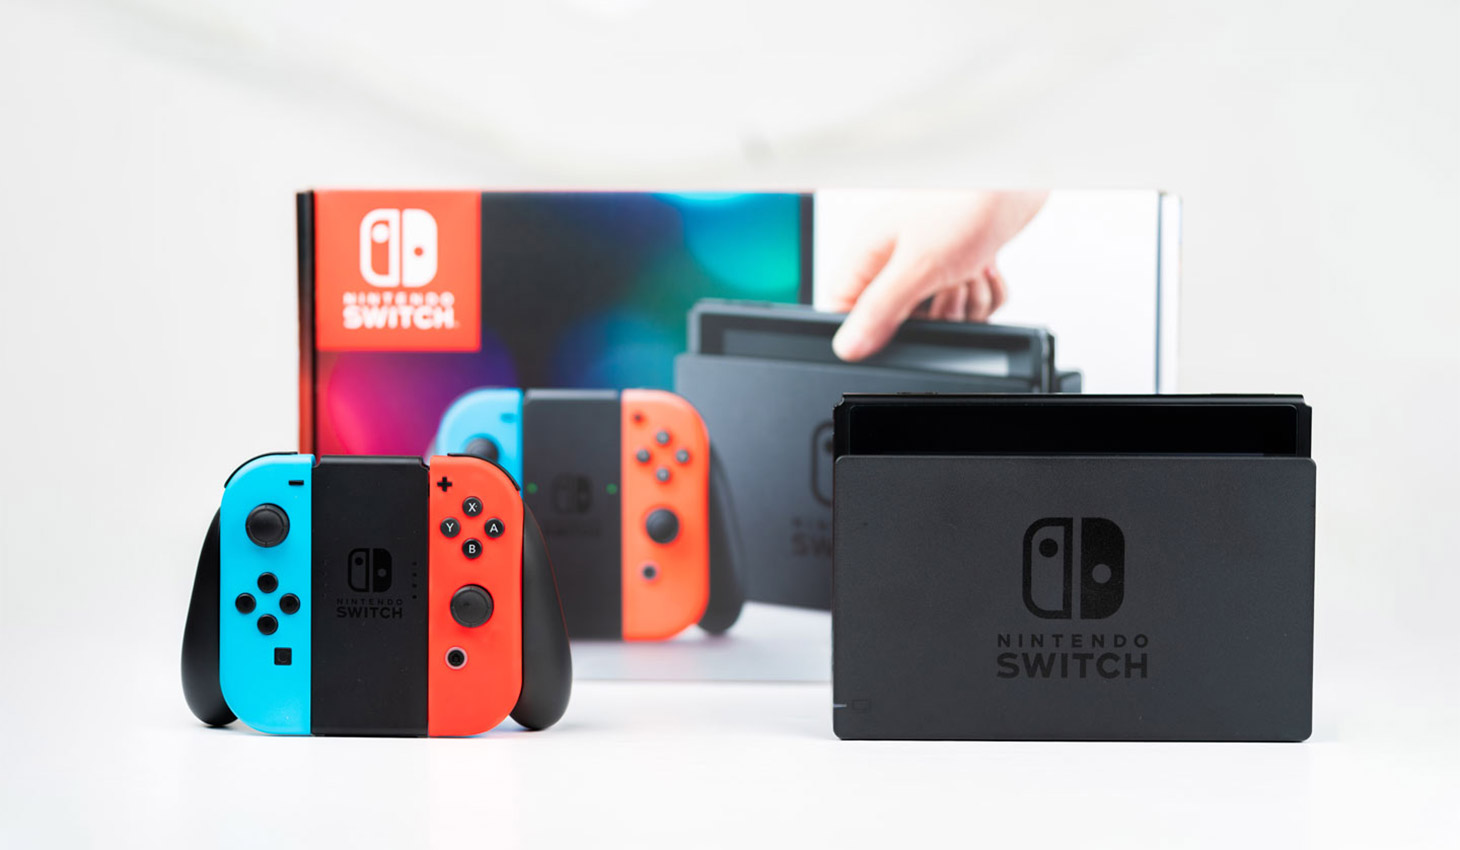 Nintendo switch controller and package